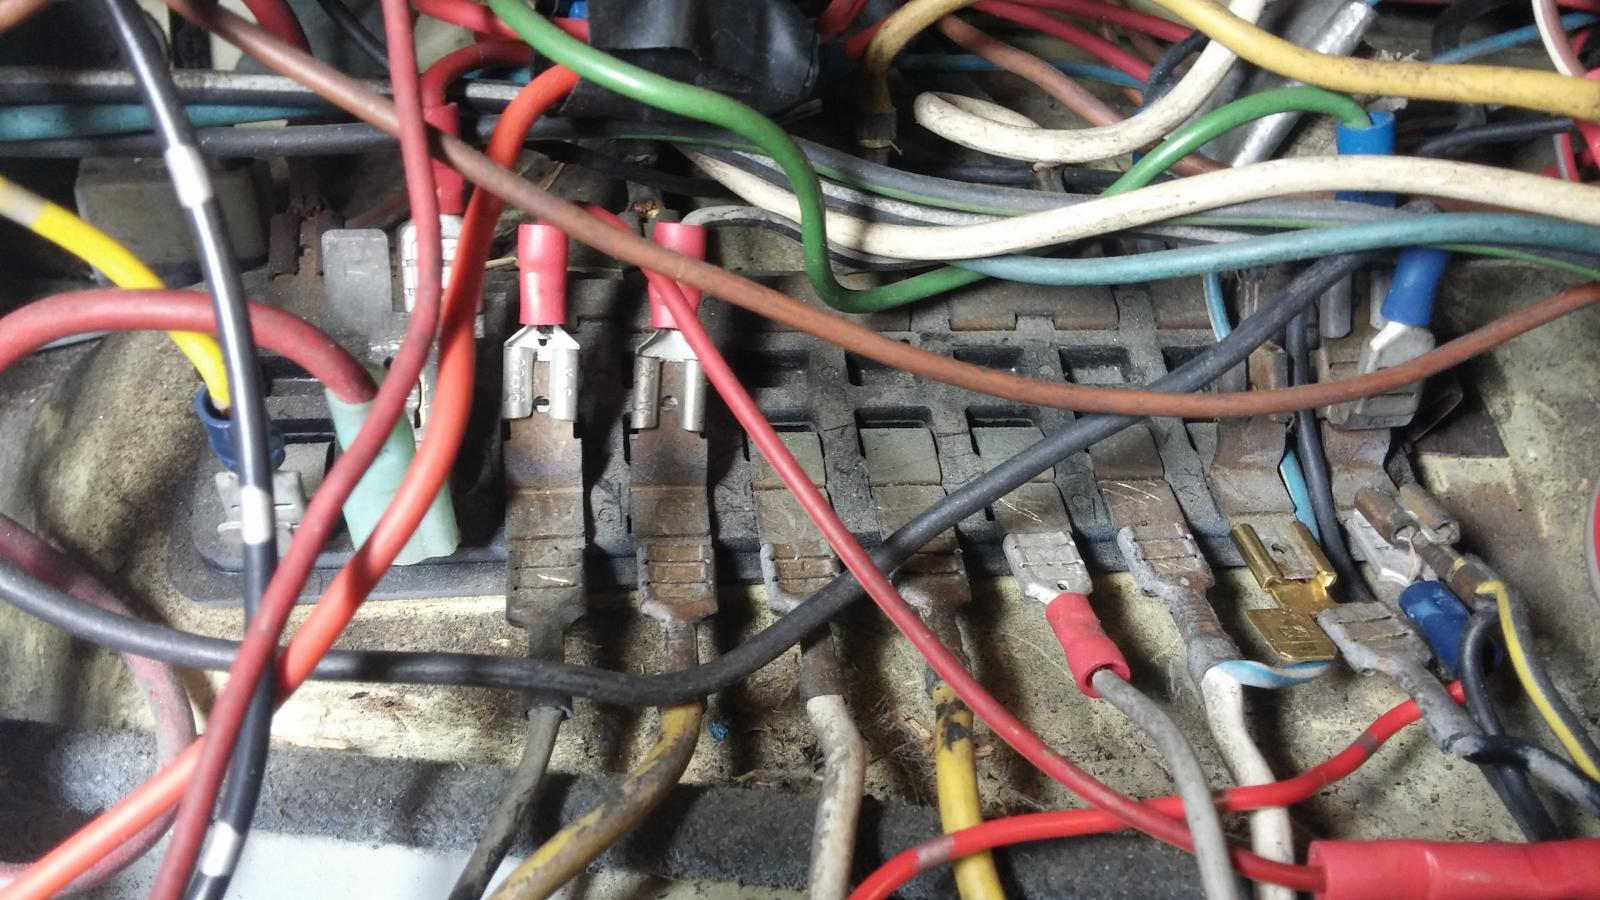 1970 Vw Beetle Fuse Box Wiring Diagram 73 Vw Alternator Wiring Gravely Deco1 Decorresine It